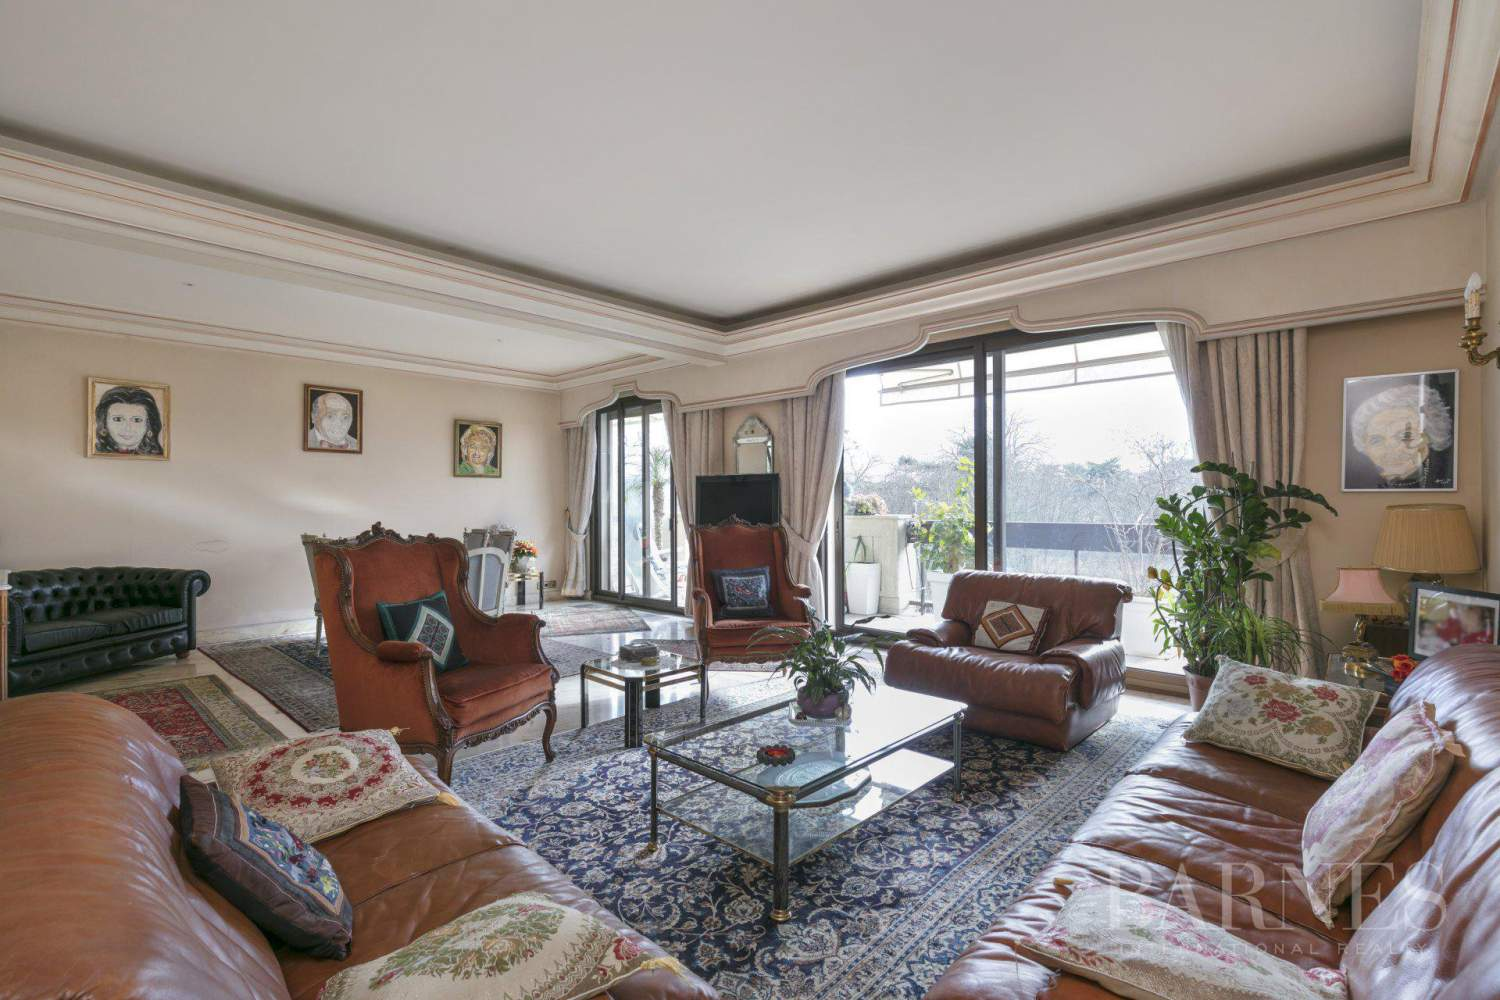 NEUILLY - BOIS - APPARTEMENT 5 PIECES - BALCONS LARGES - VUES PANORAMIQUES picture 12